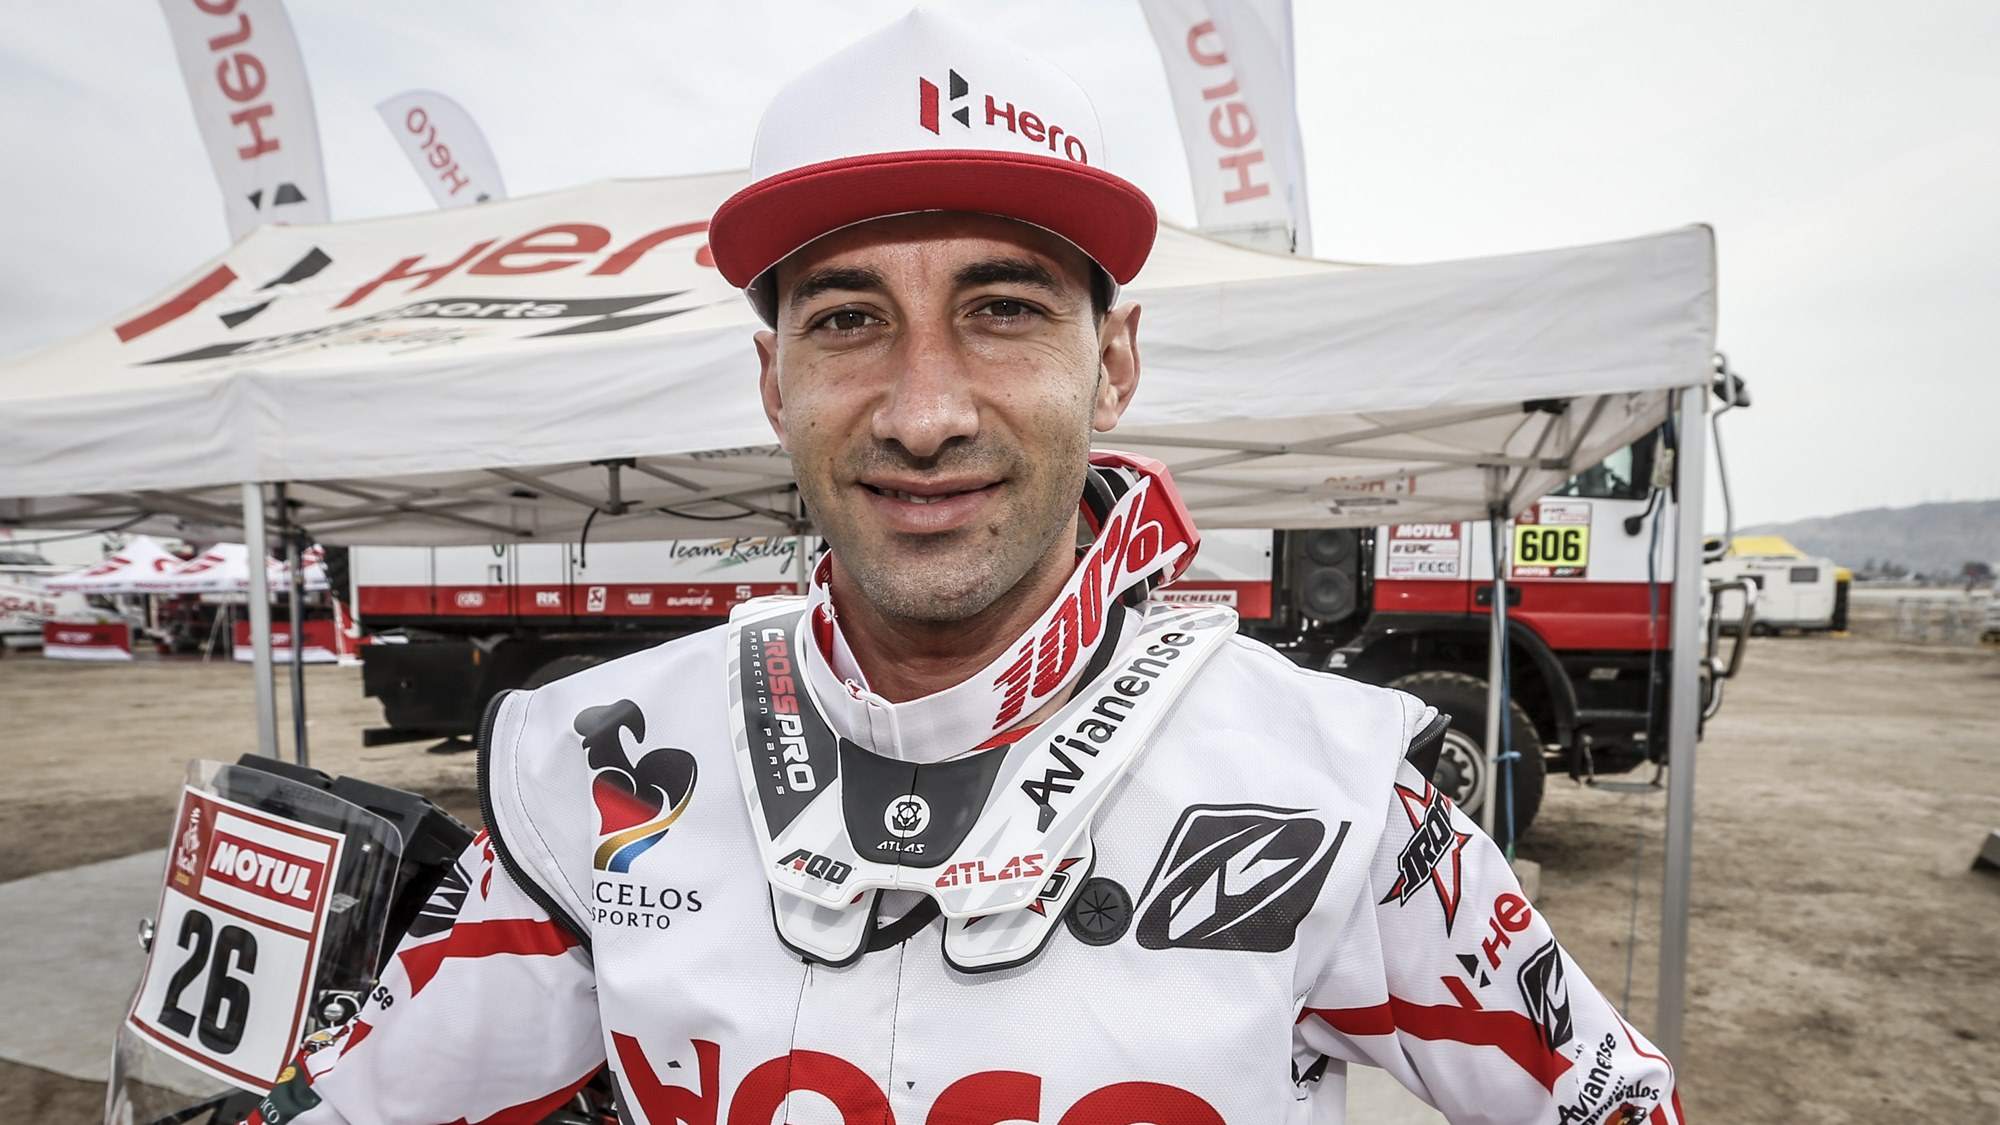 Joaquim Rodrigues, Rider, Hero MotoSports Team Rally